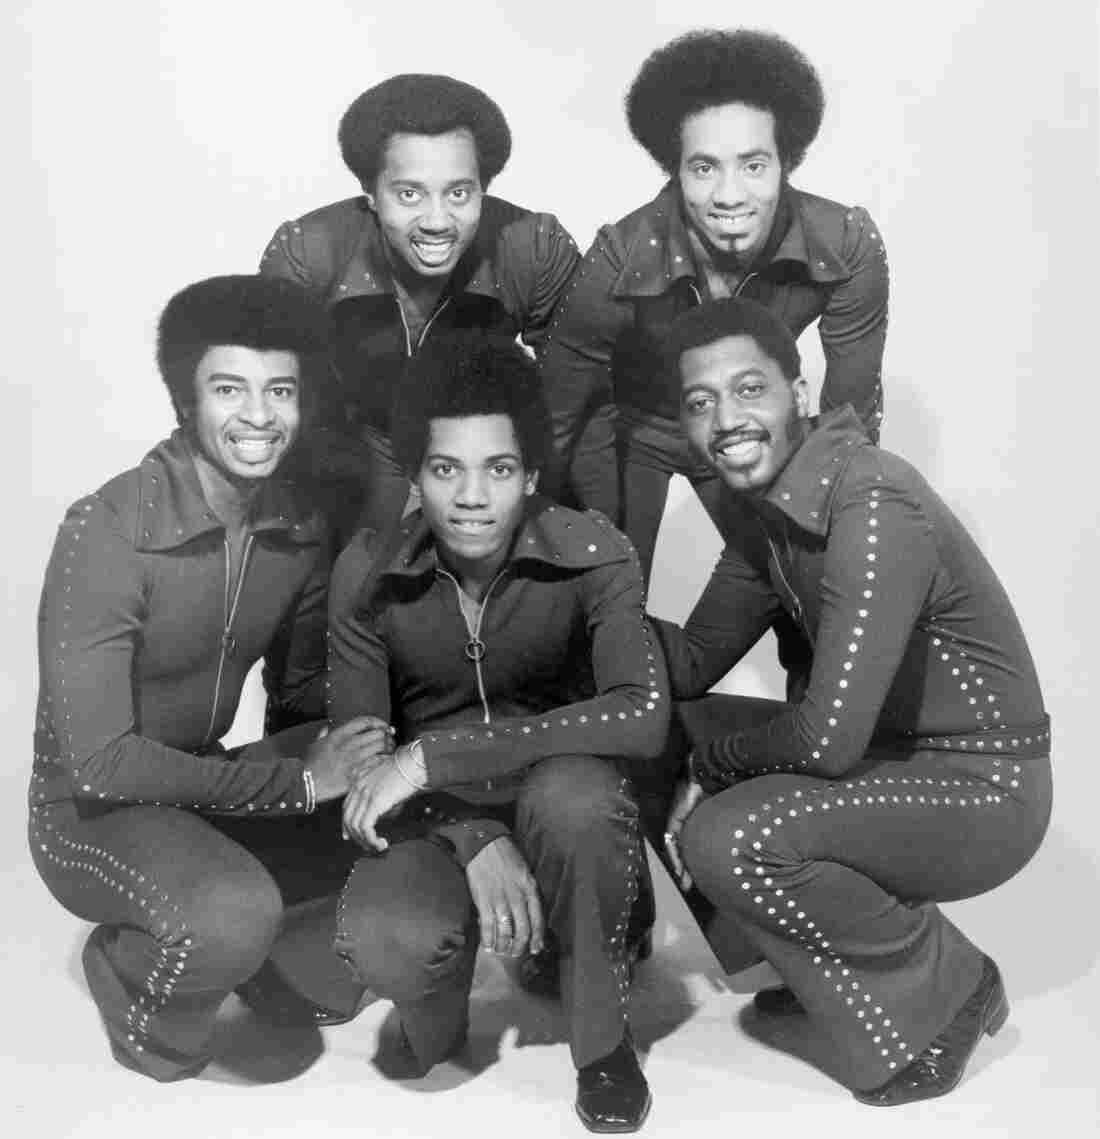 The Temptations circa 1974. They are, clockwise from the left, Dennis Edwards, Melvin Franklin, Richard Street, Otis Williams and Damon Harris.